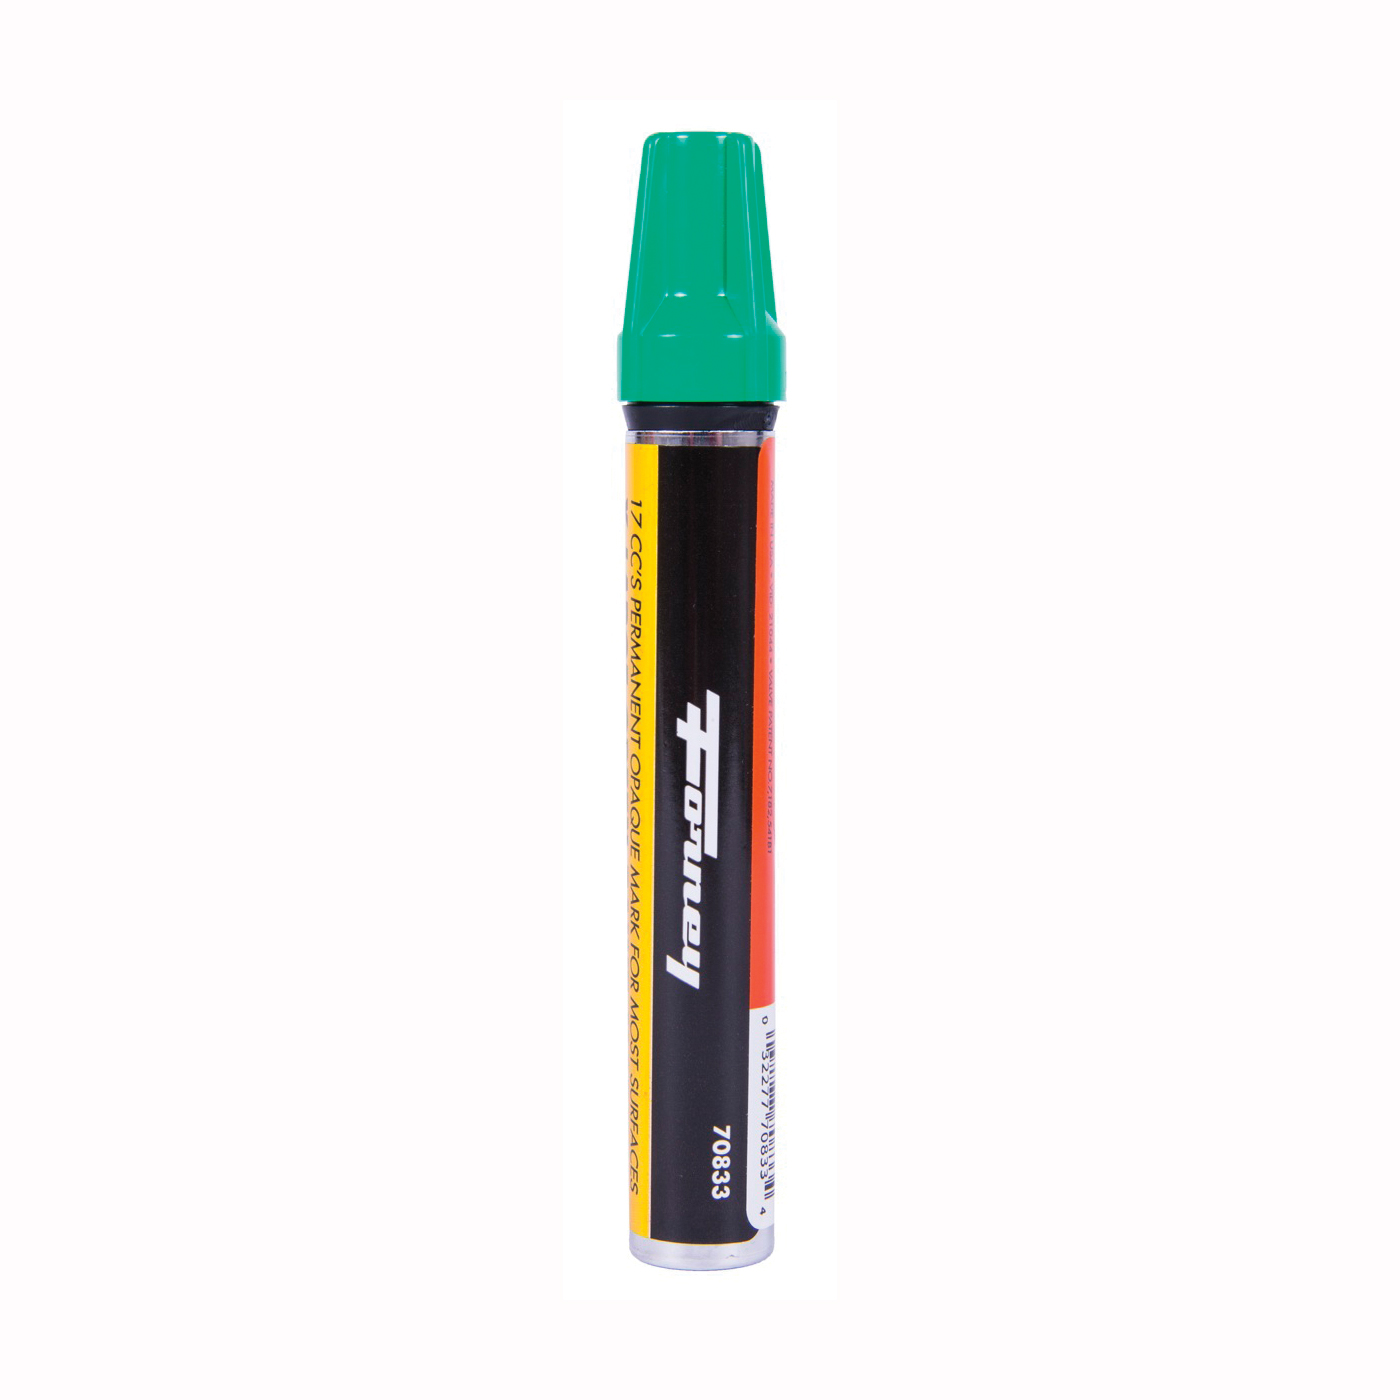 Picture of Forney 70833 Paint Marker, XL Tip, Green